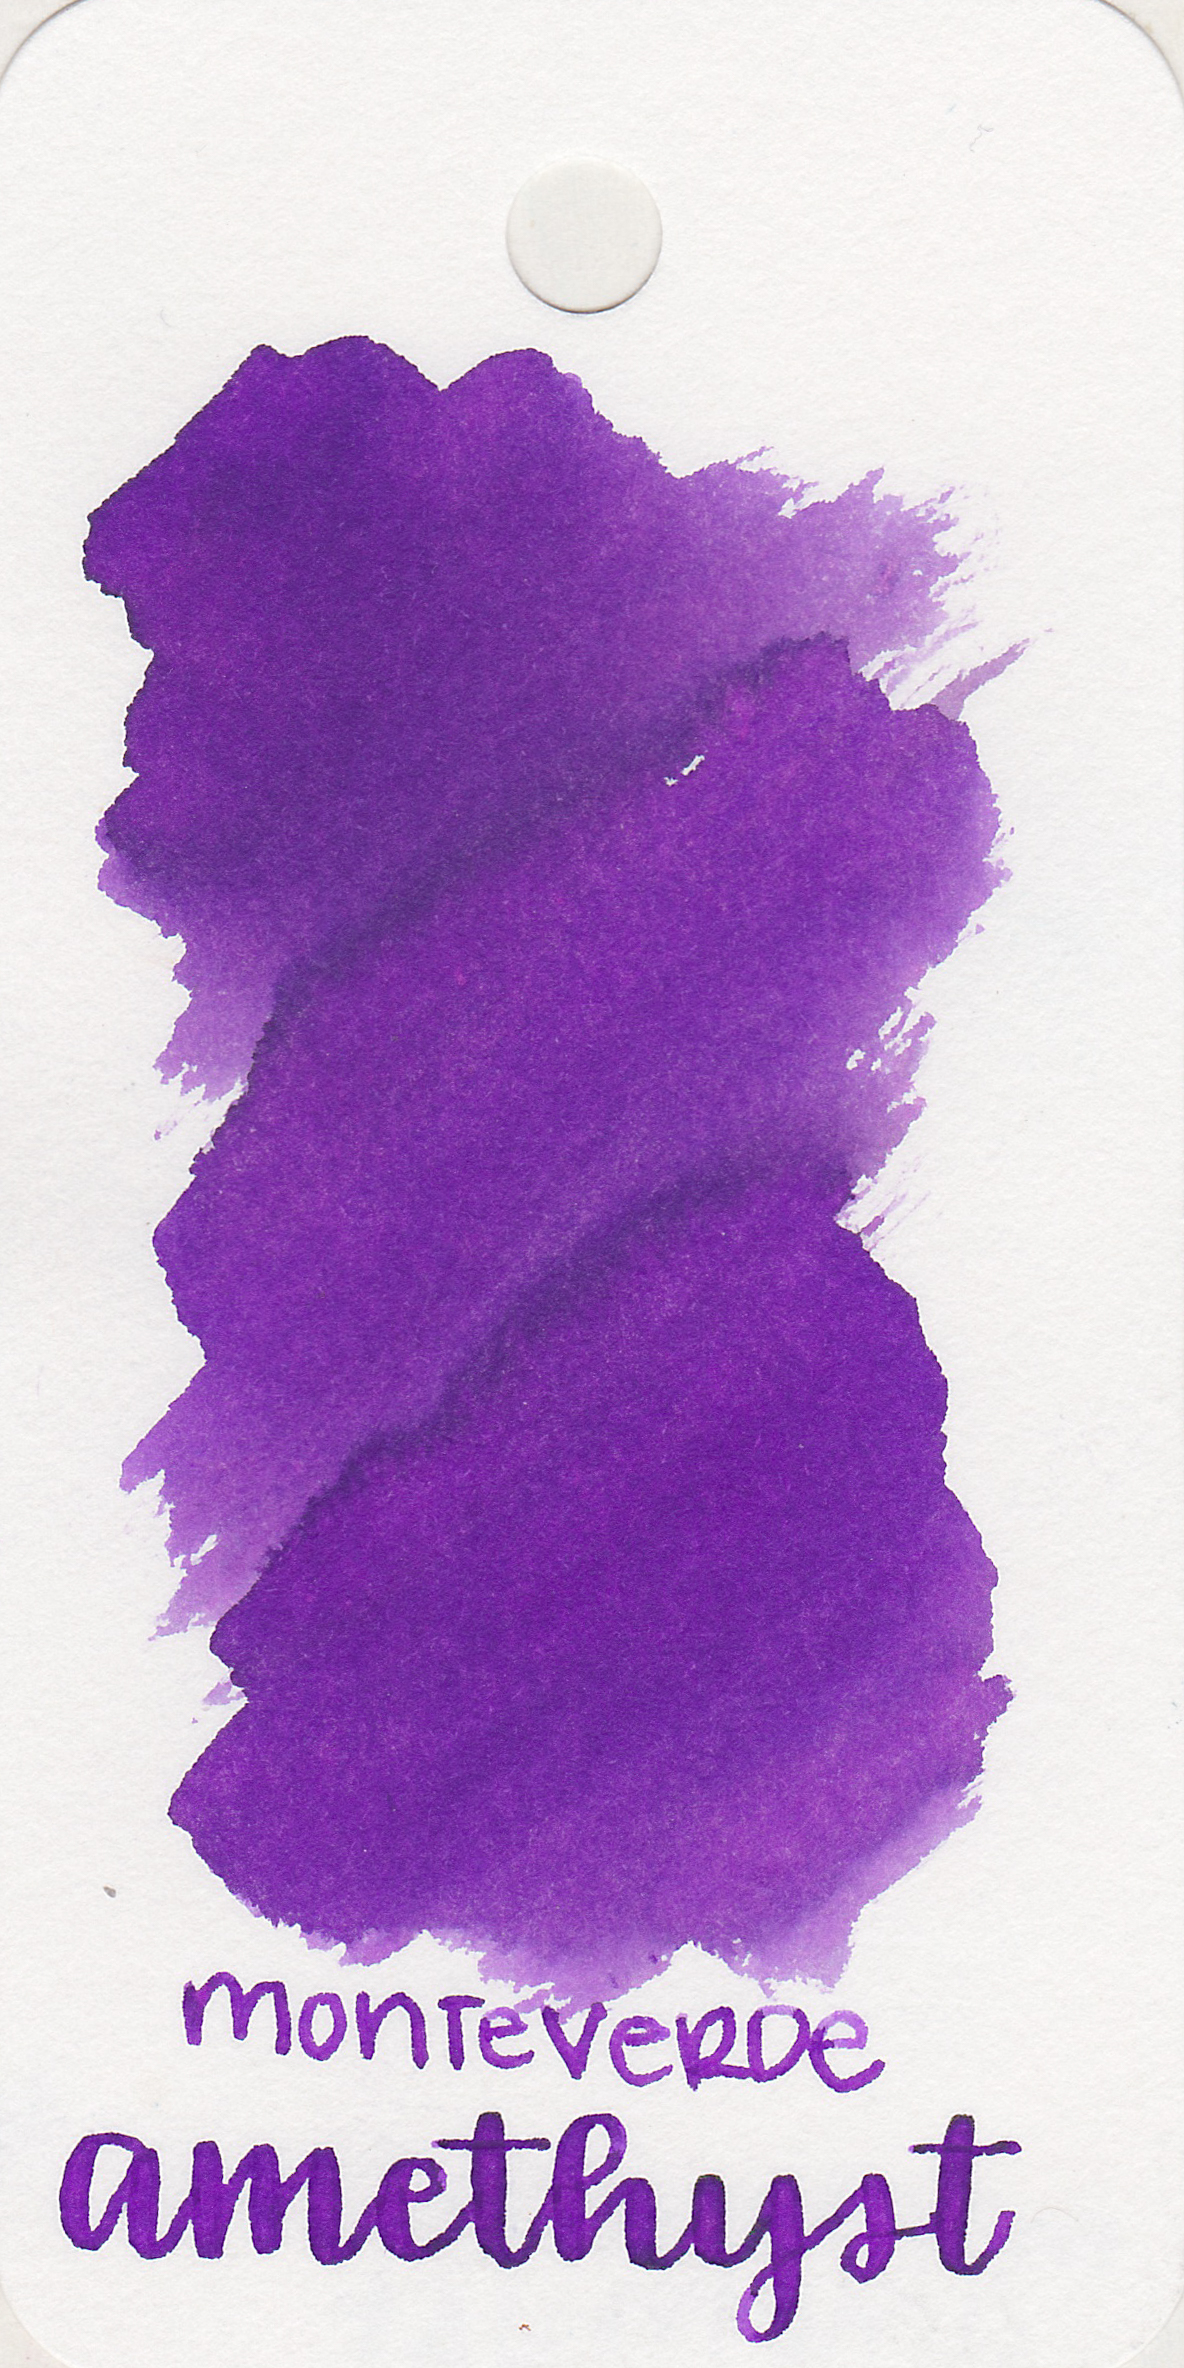 The color: - Amethyst is a beautiful, bright medium purple.